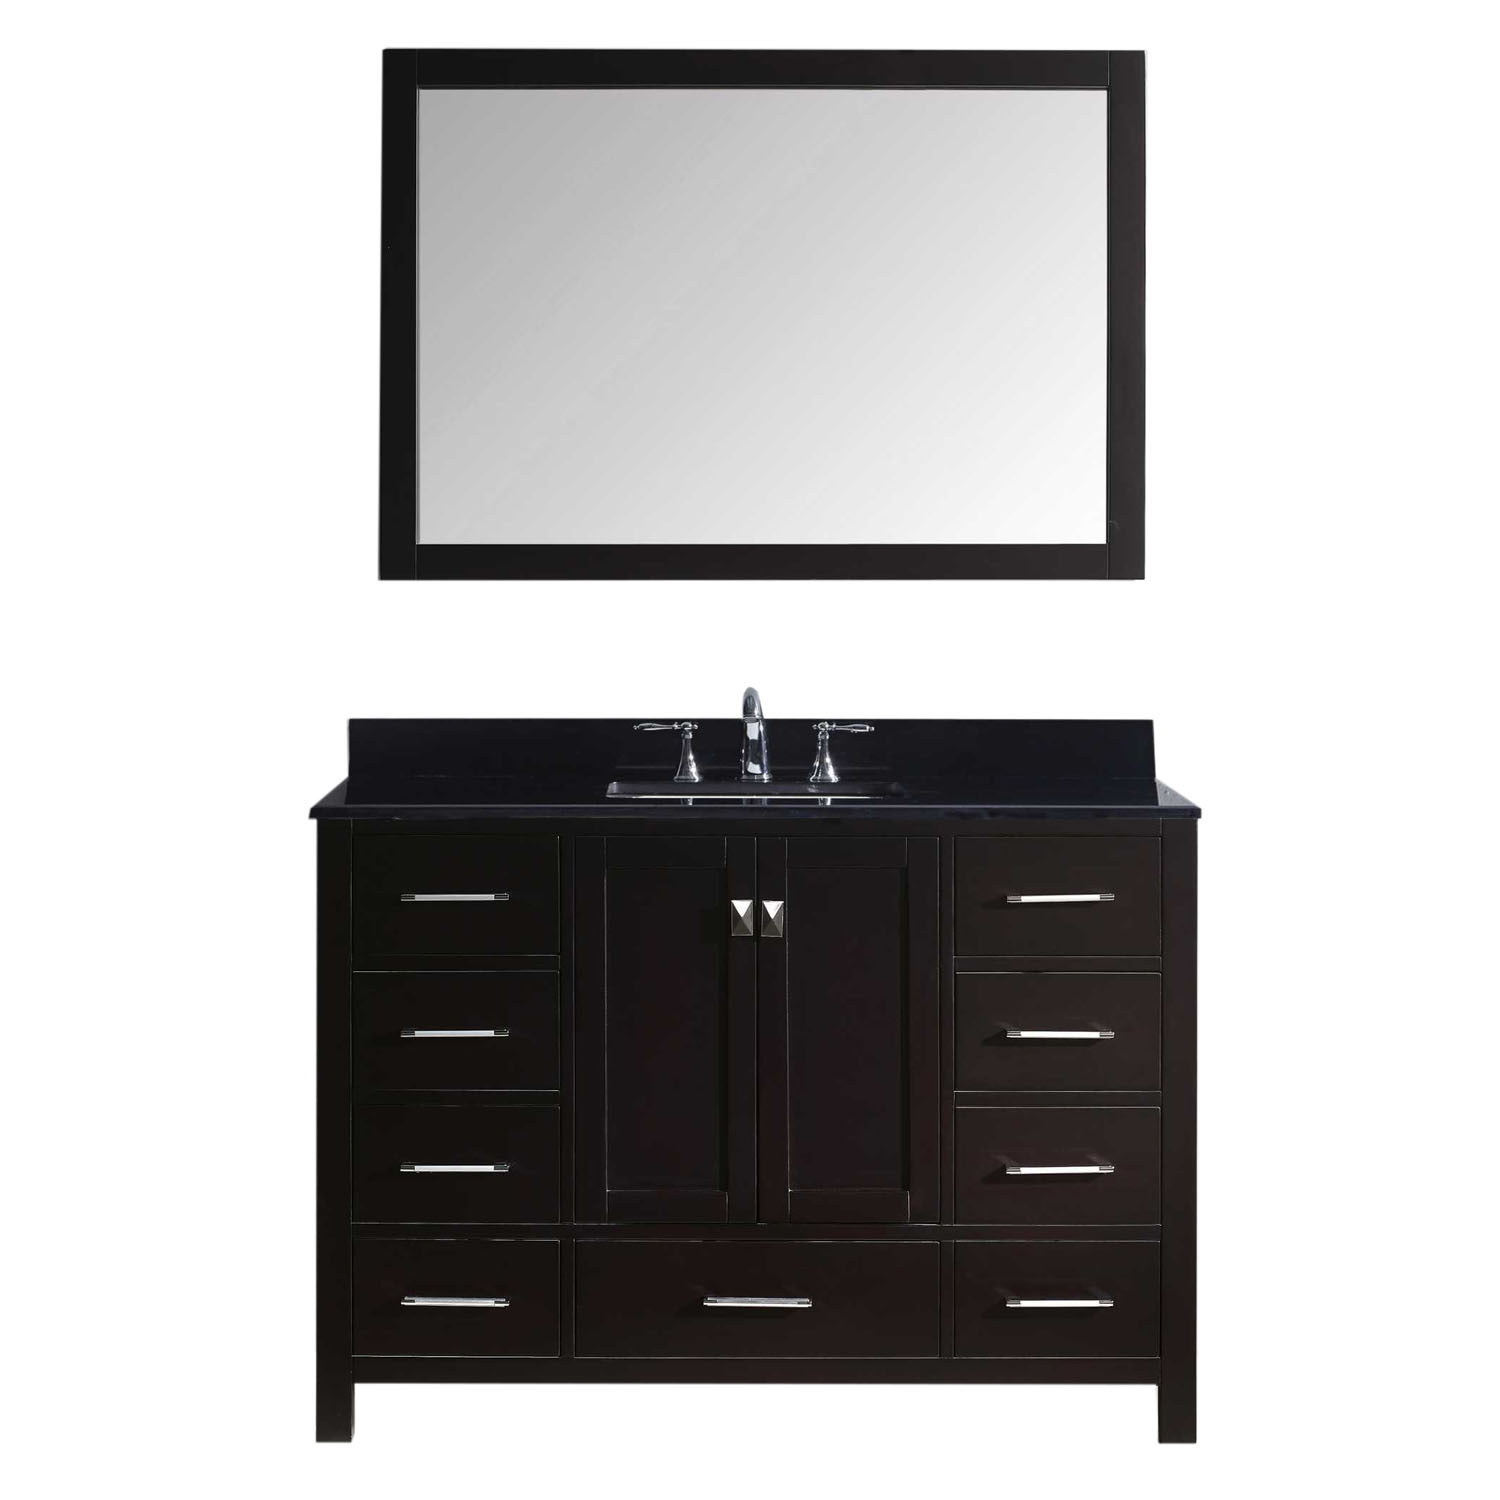 Virtu GS-50048-BGSQ-ES-001 Caroline Avenue 48 Inch Single Bathroom Vanity Set In Espresso